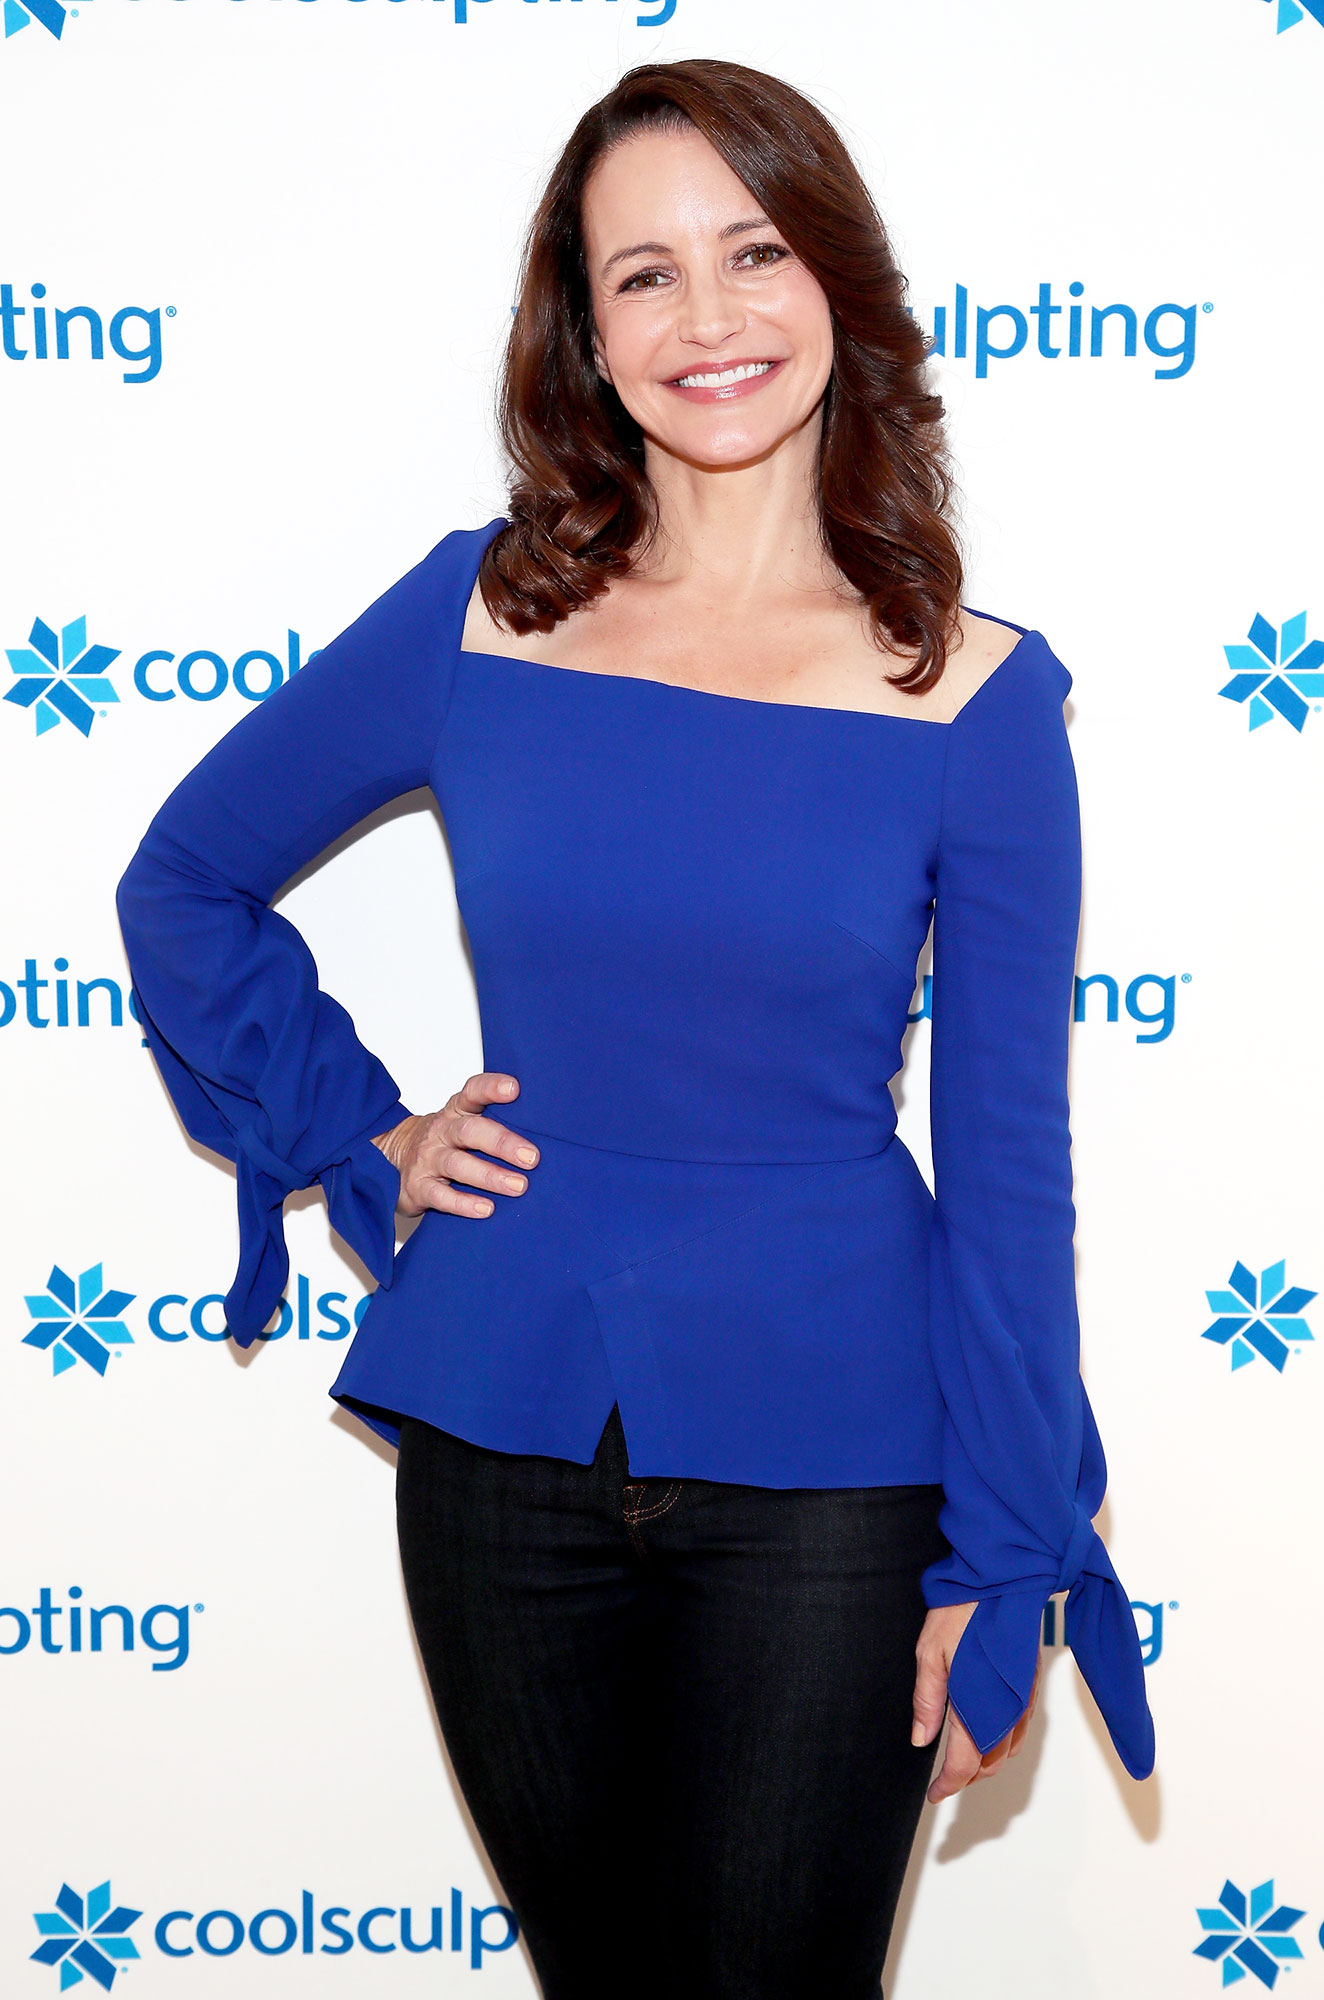 Kristin Davis - Actress, producer, philanthropist and busy mom, Kristin Davis, partnered with CoolSculpting on the Denim Denial campaign to inspire women to learn more about personalized body contouring and fitting in to their favorite pair of denim again! on October 24, 2018 in New York City.